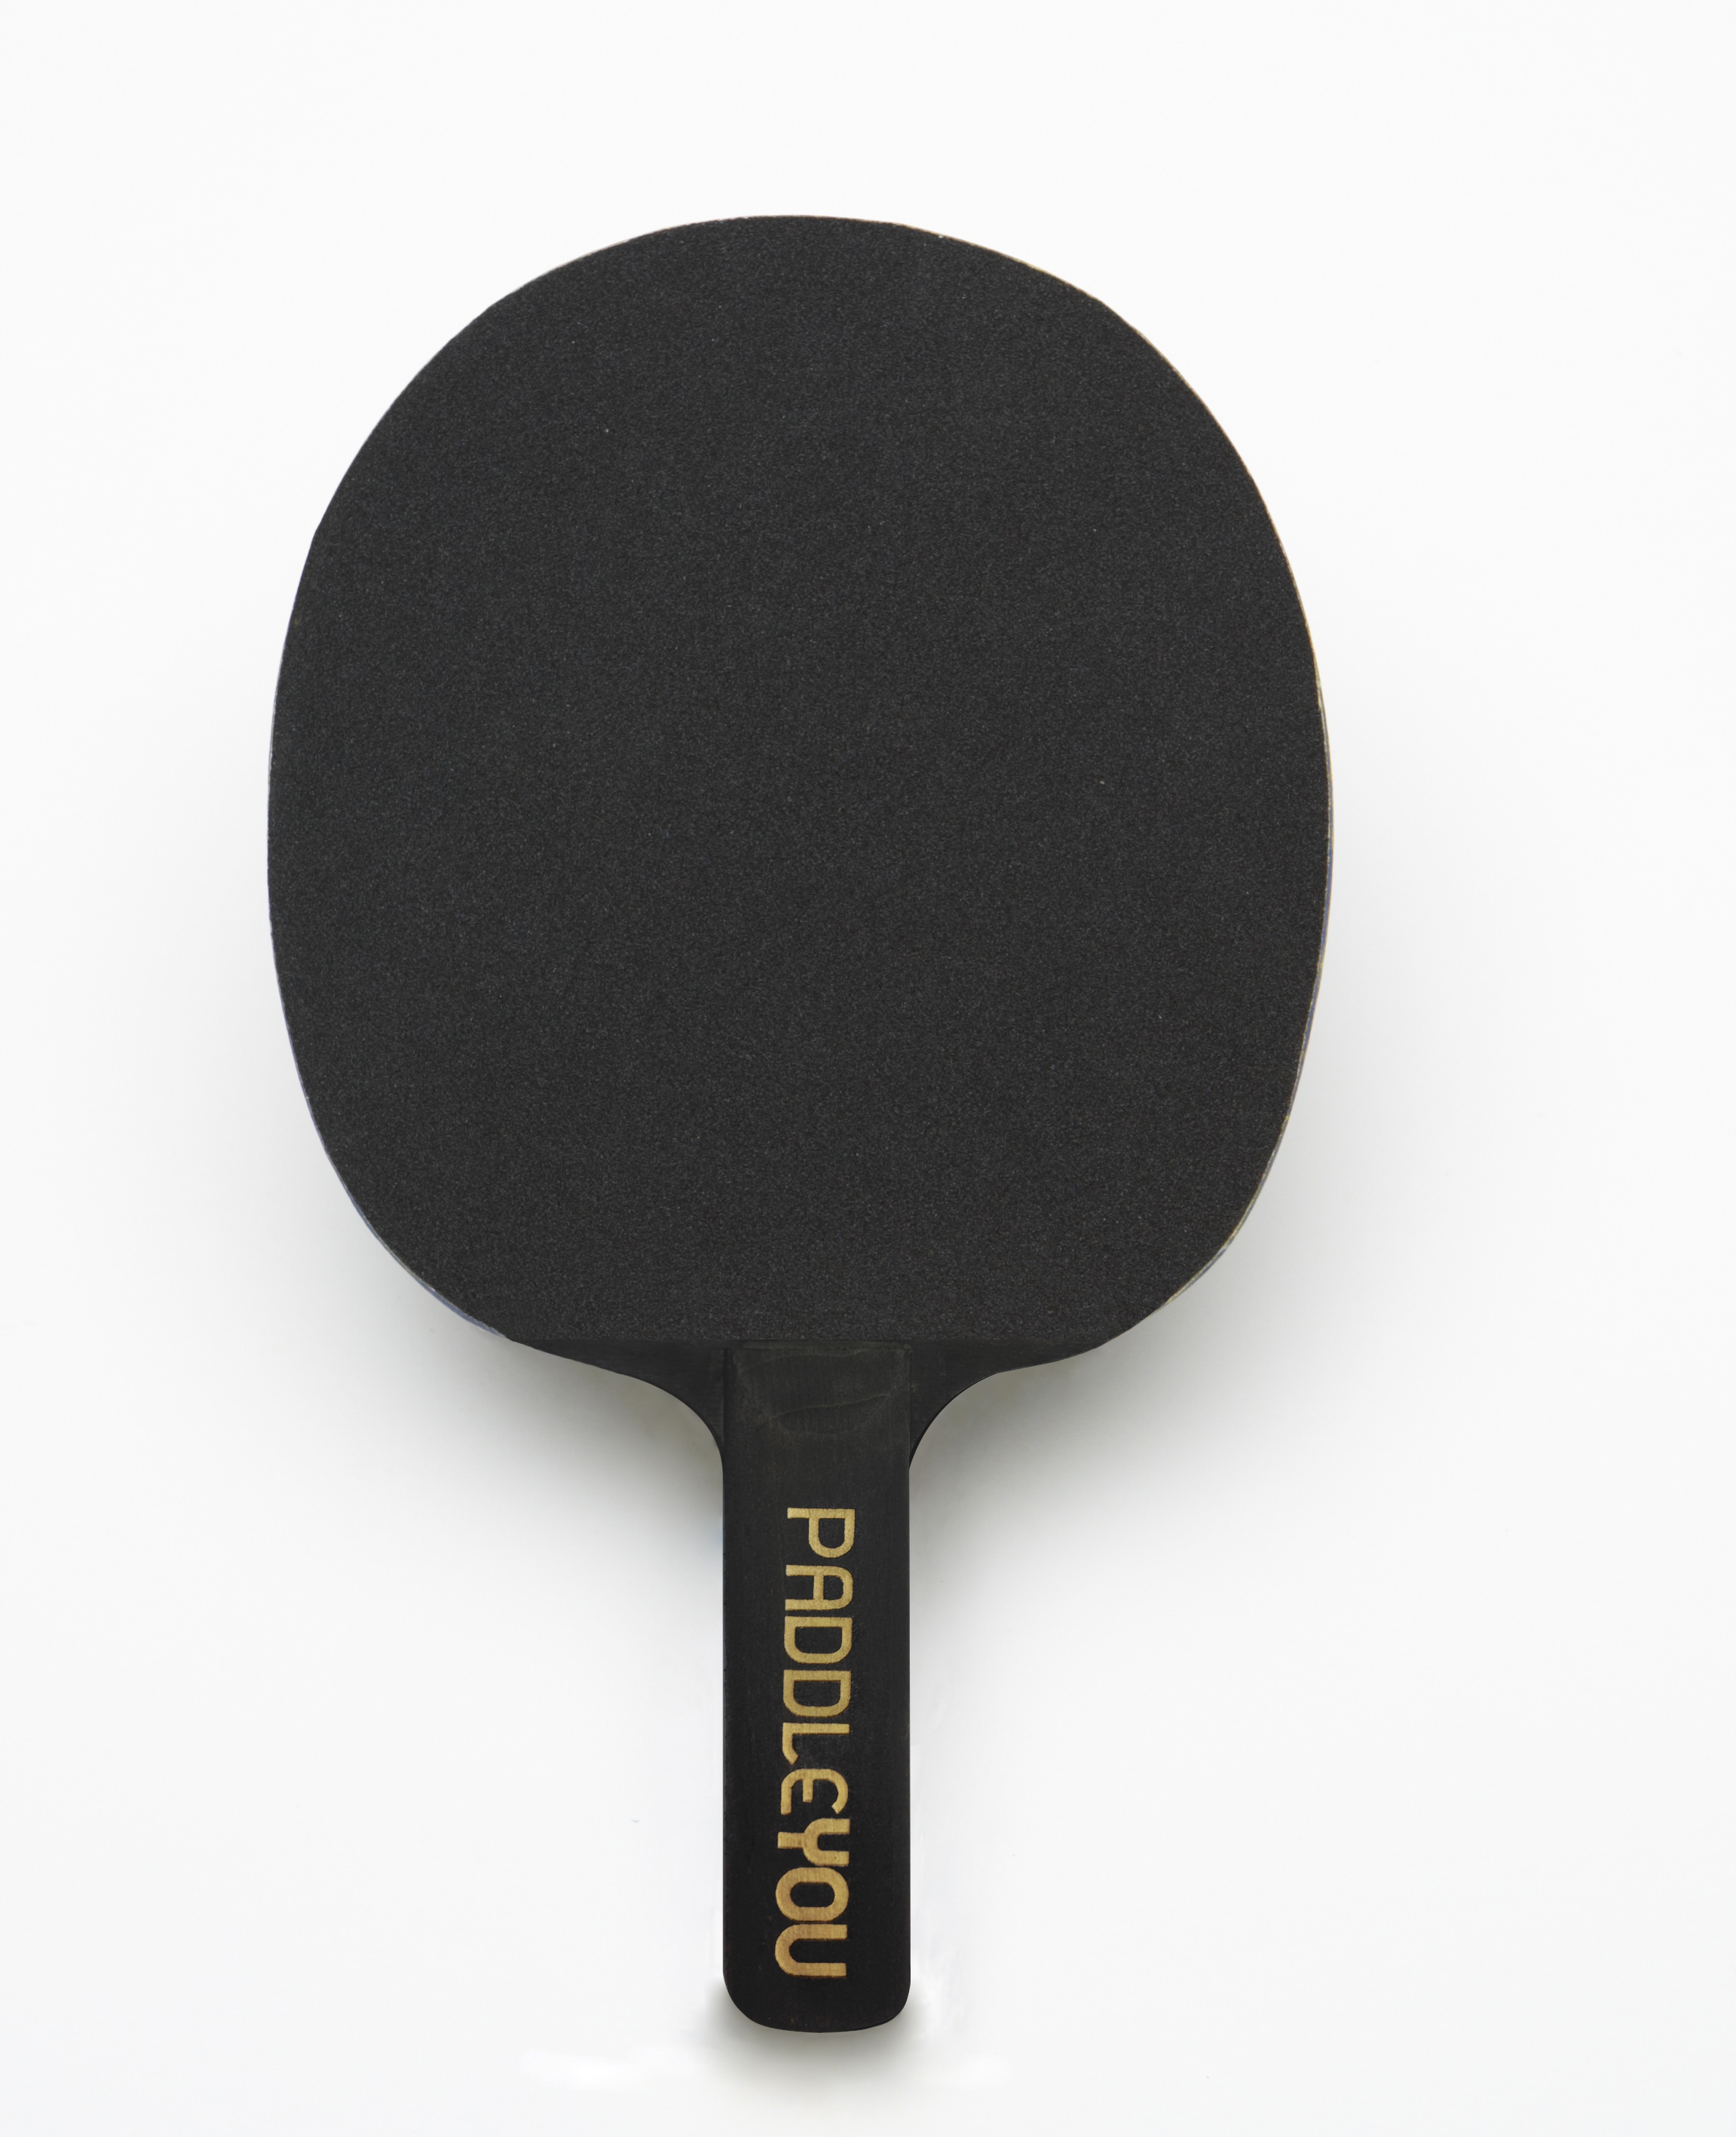 The Best Table Tennis Paddle In The World - tabletennisnation ...